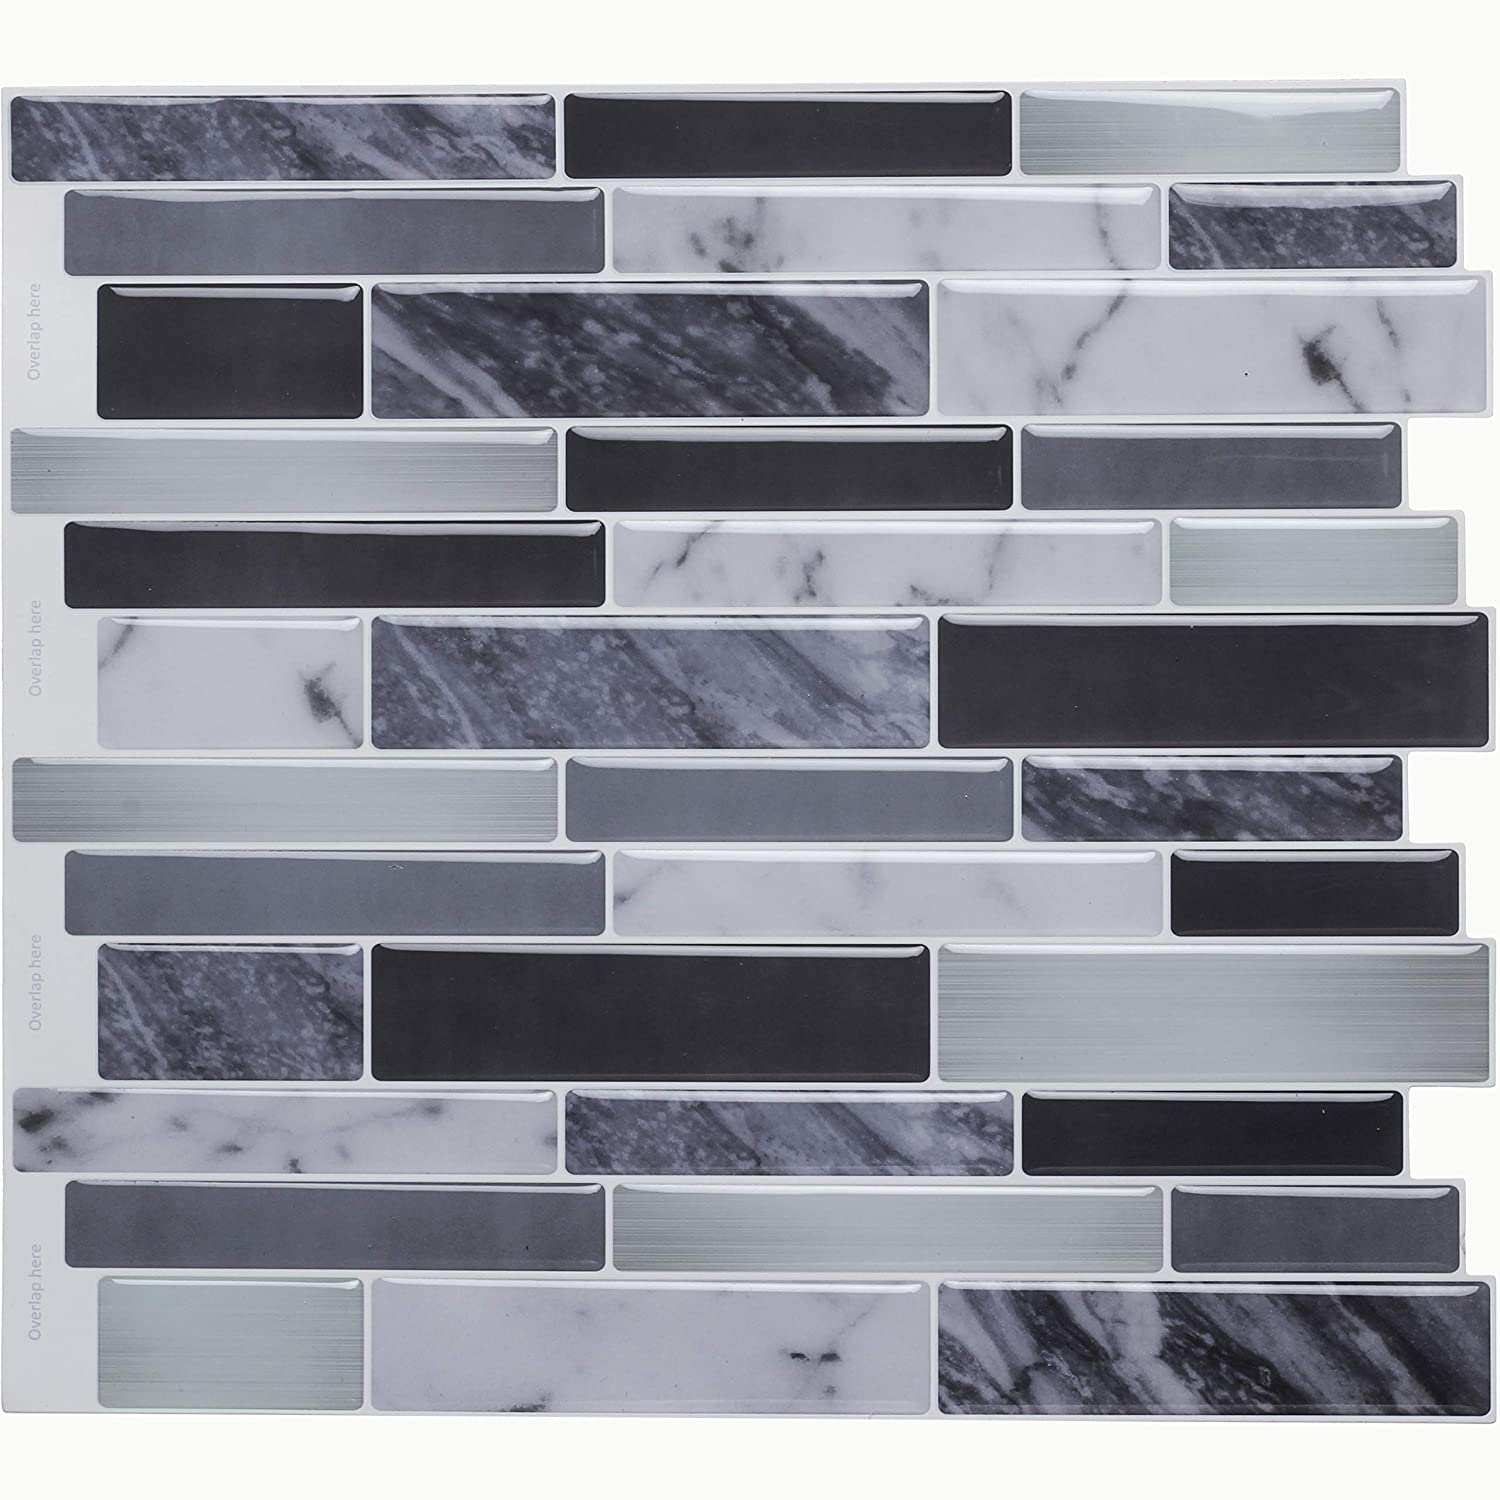 Vamos Tile Peel Stick Tile Backsplash, 3D Self Adhesive Wall Tiles Kitchen & Bathroom-10 x 10(6 Tiles)